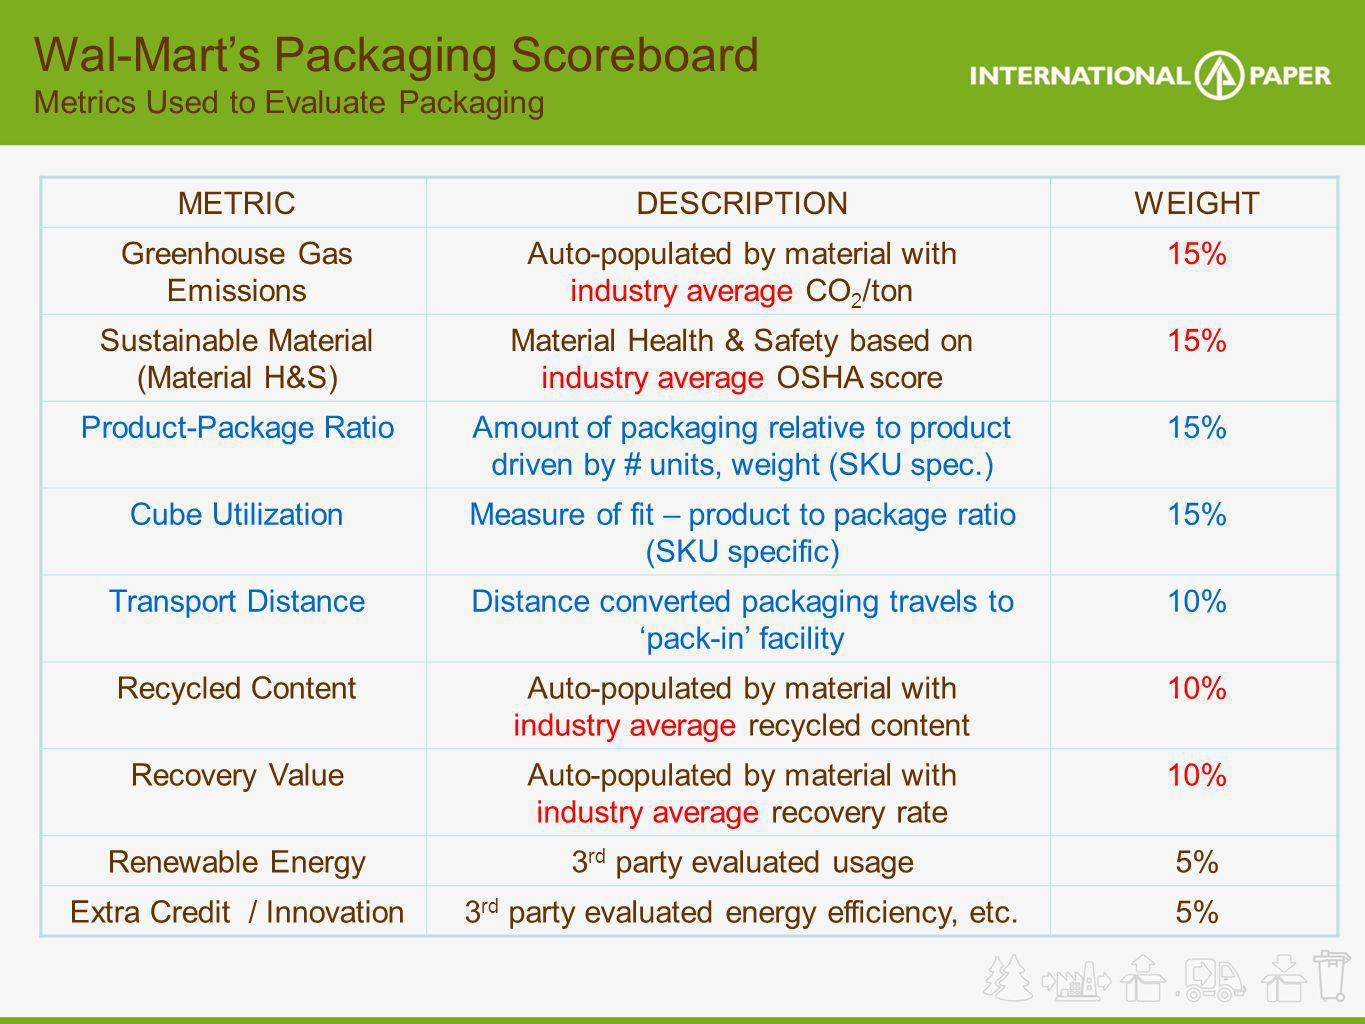 Wal-Mart's Packaging Scoreboard